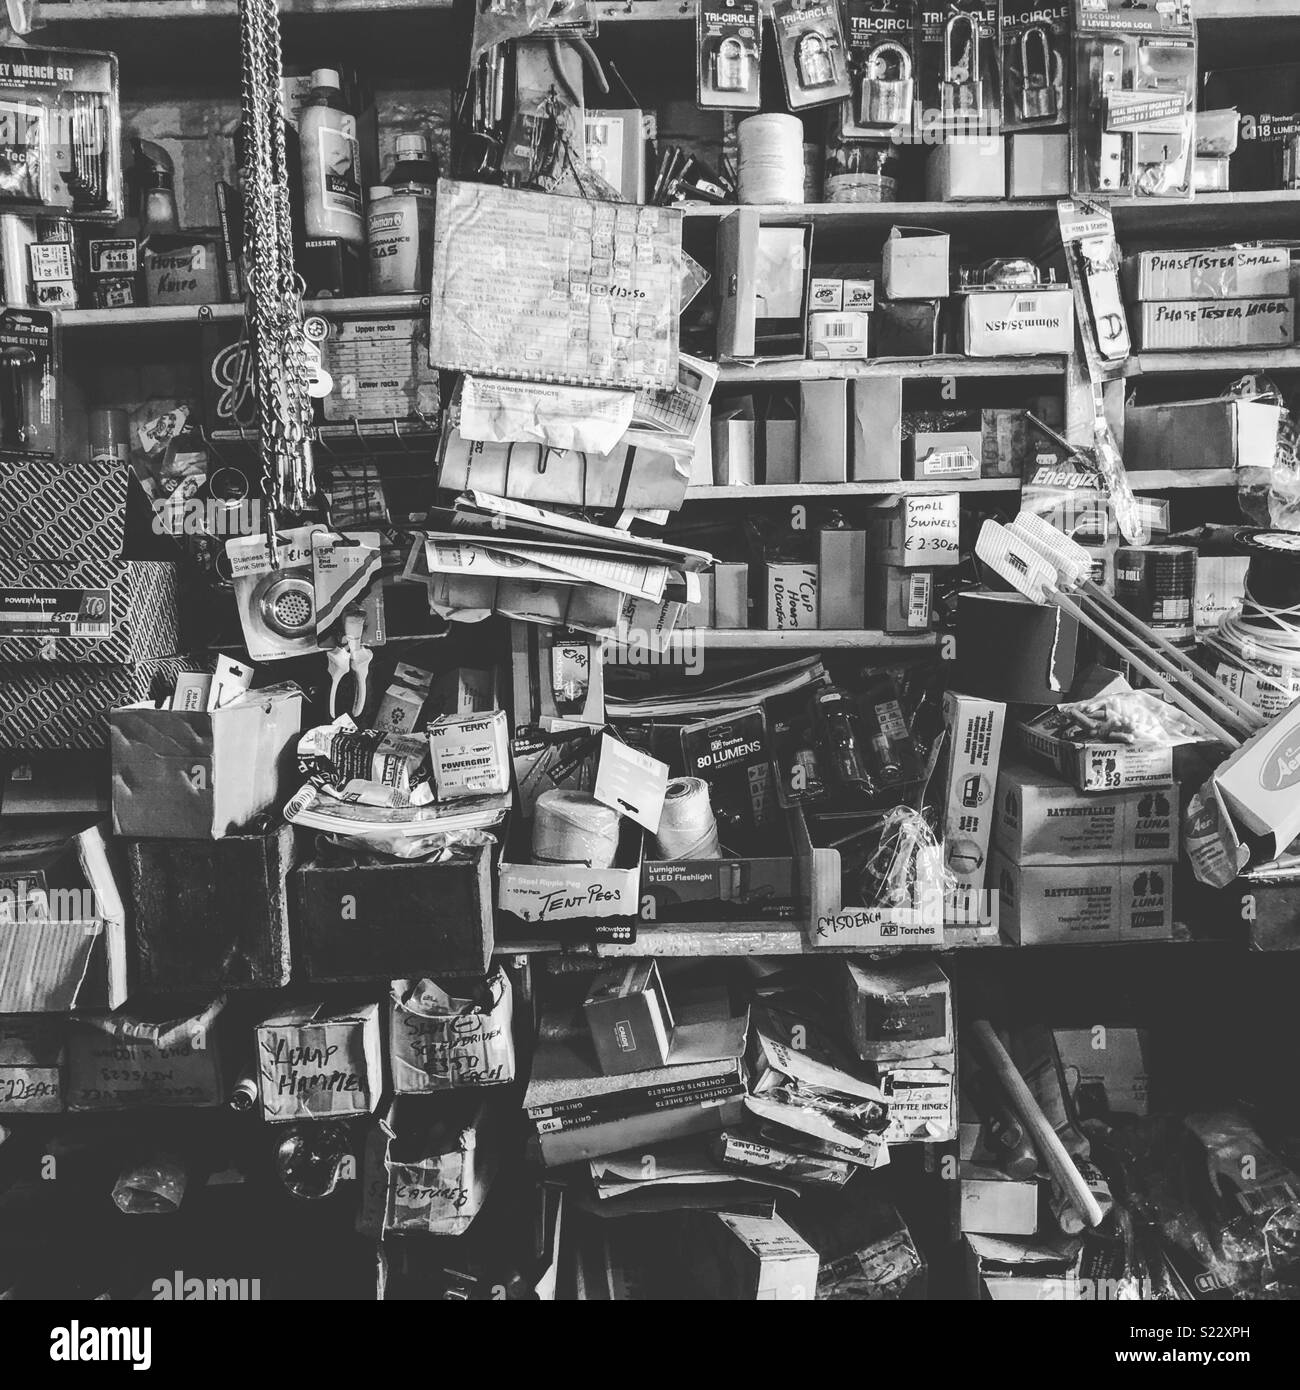 Junk Shop Photo Stock